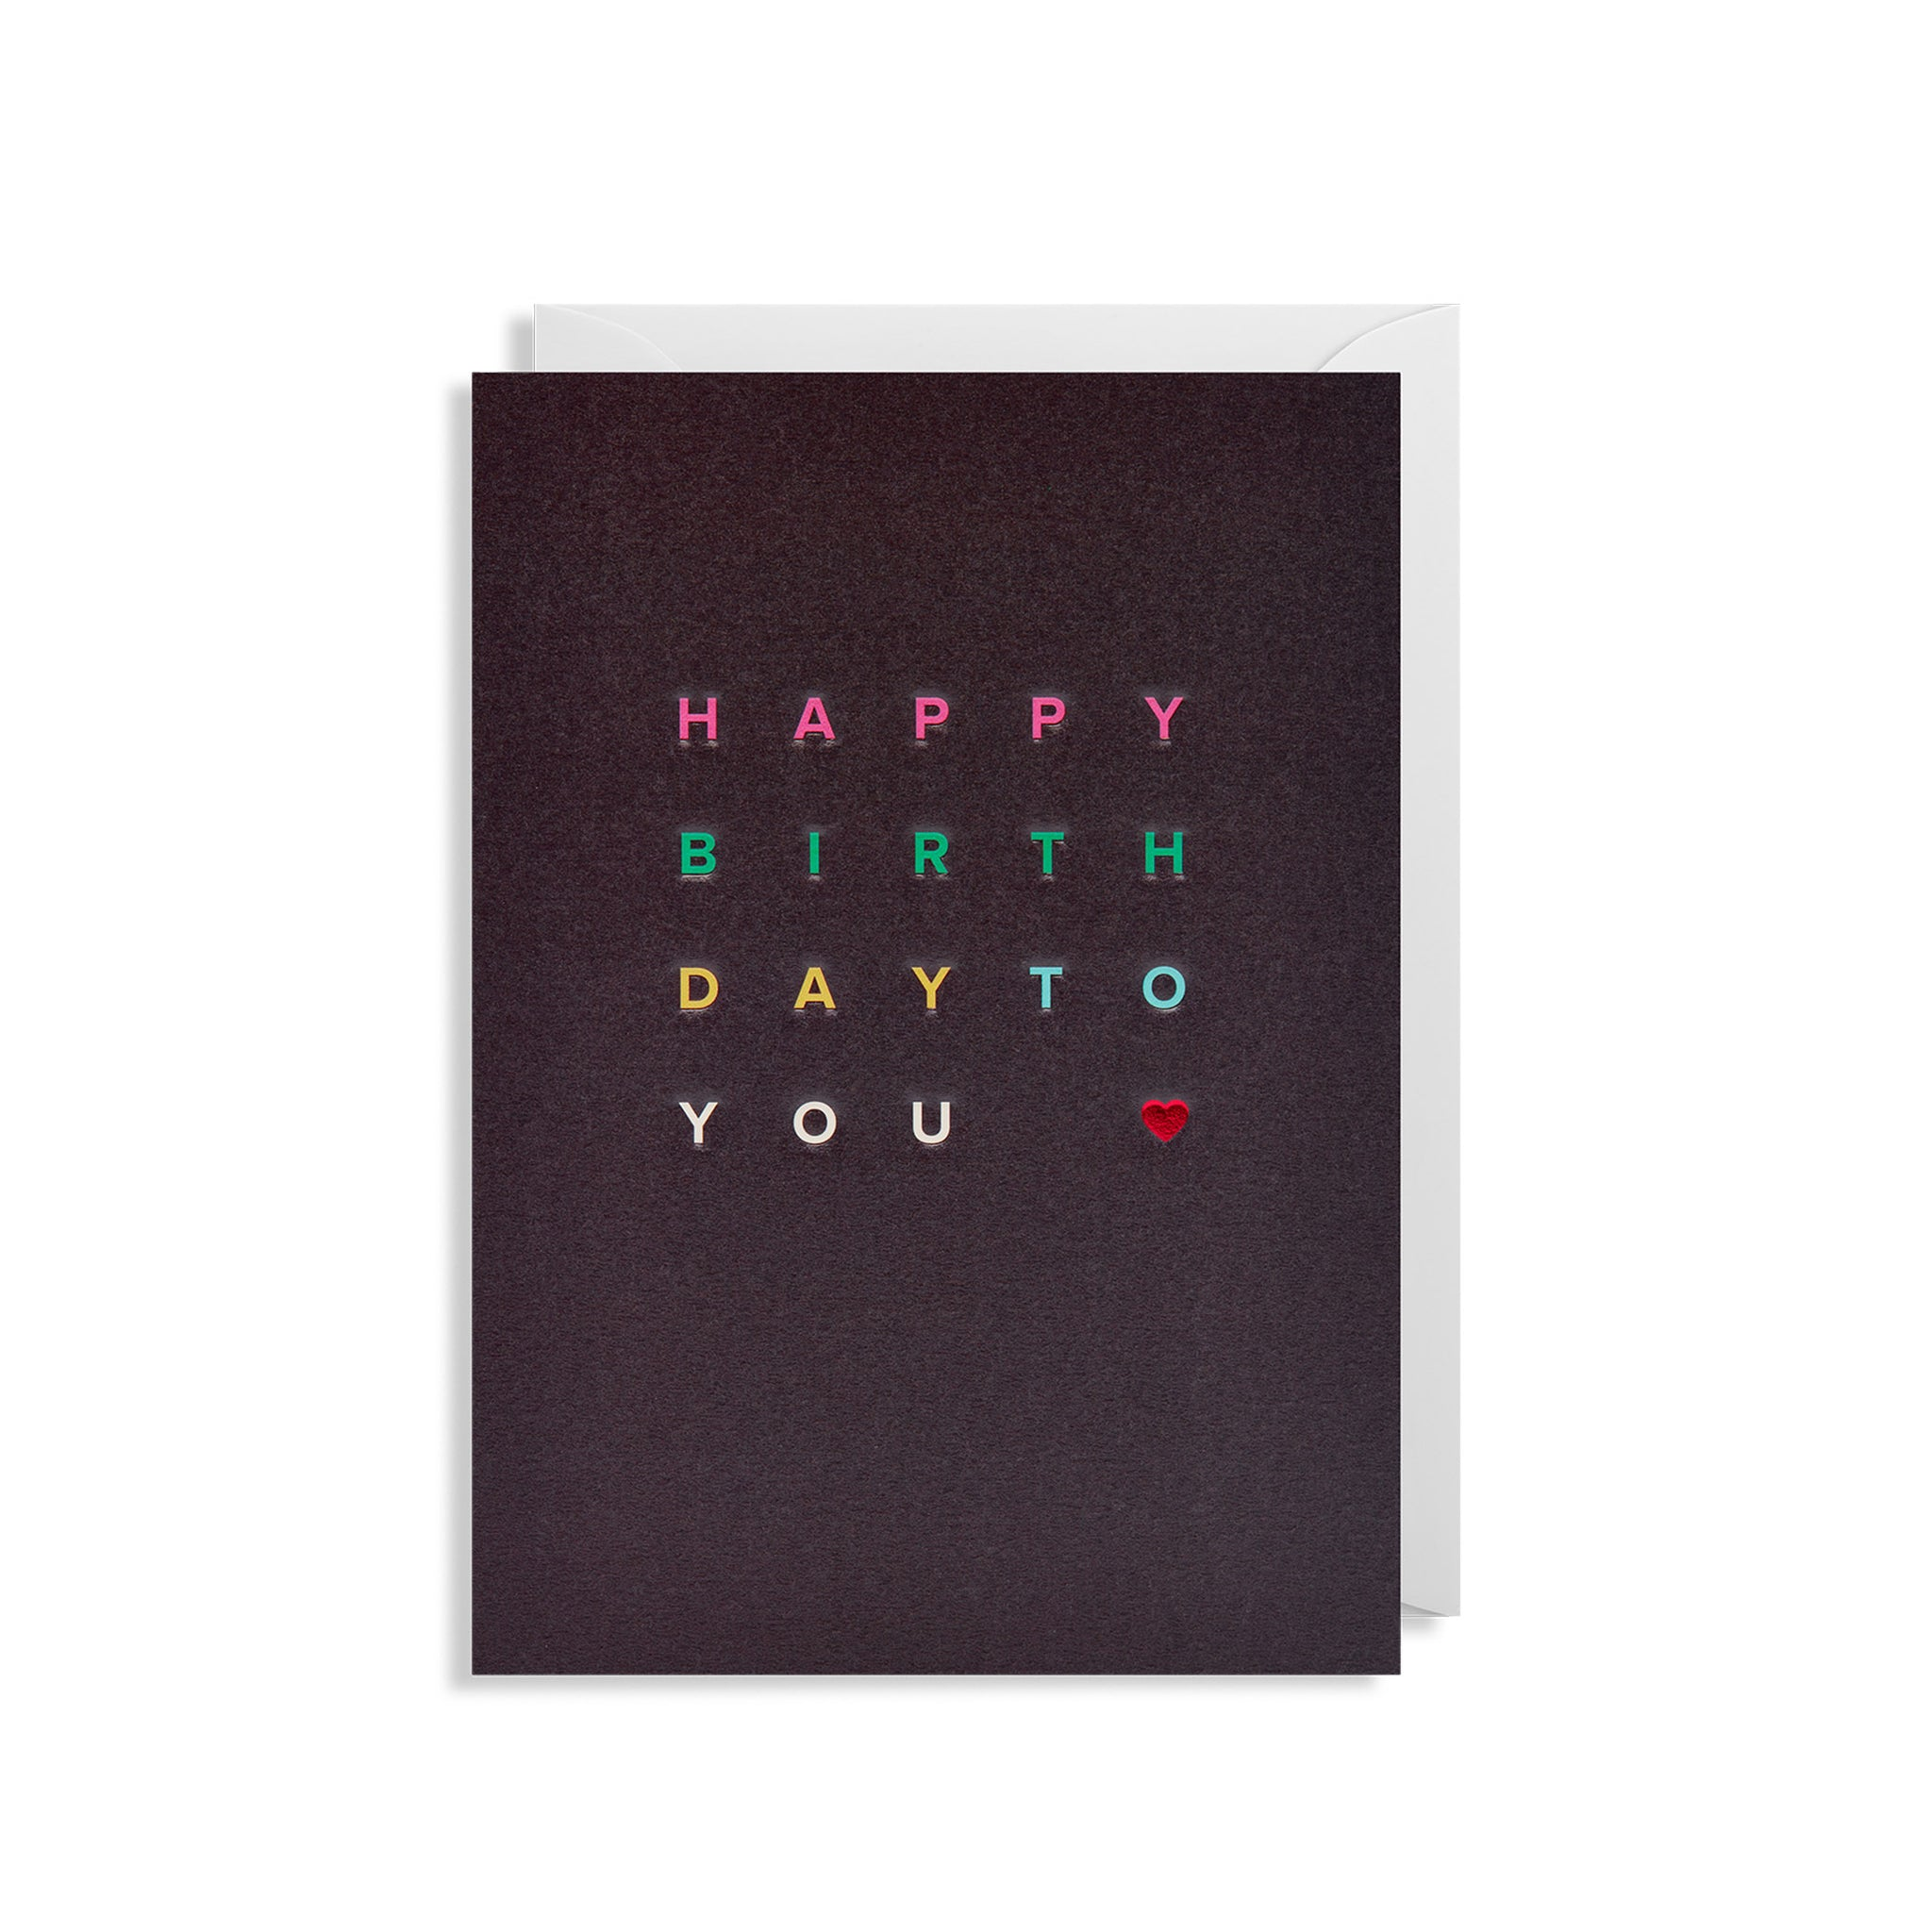 Happy Birthday To You - Greetings Card